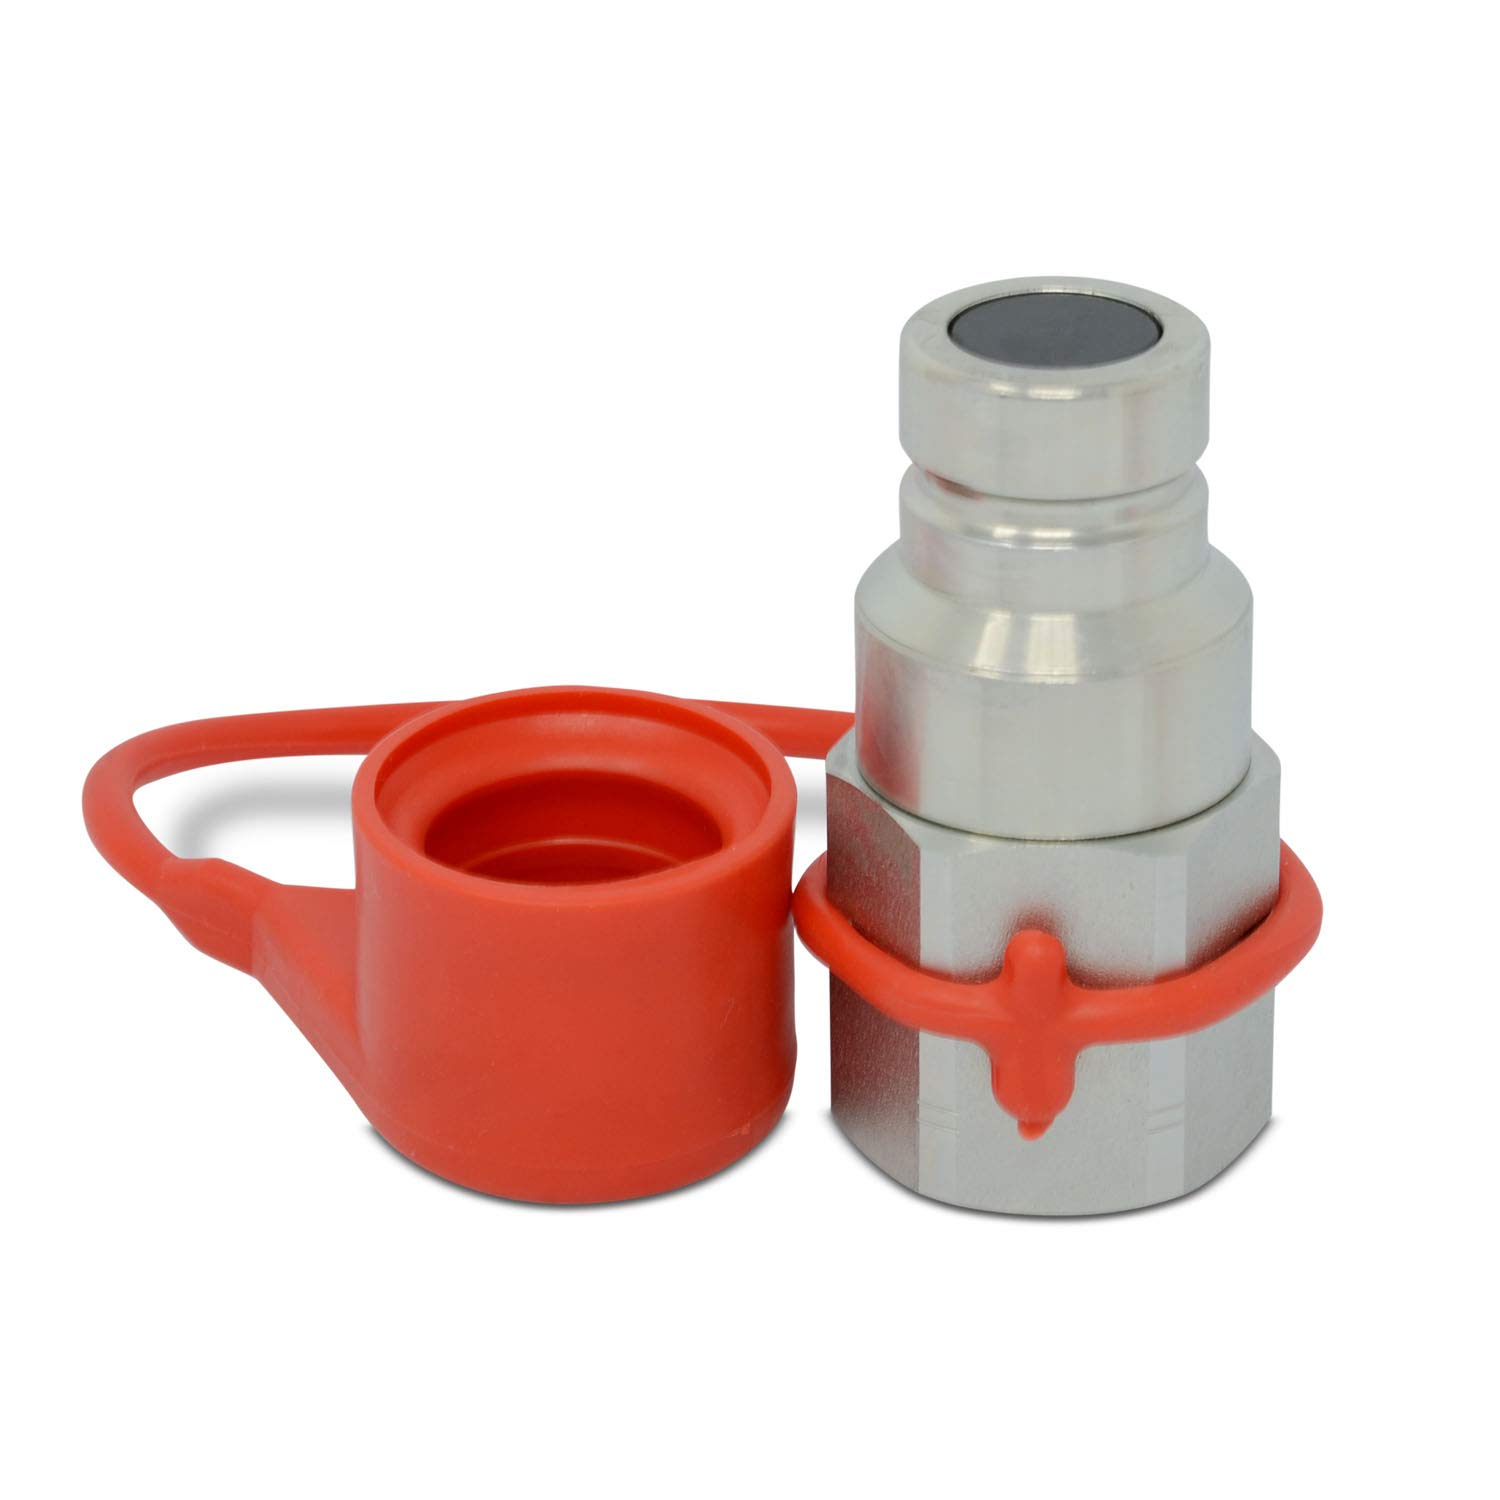 3//4/″ Flat Face High Flow Hydraulic Quick Connect Male Coupler 3//4/″ NPT Thread Summit Hydraulics